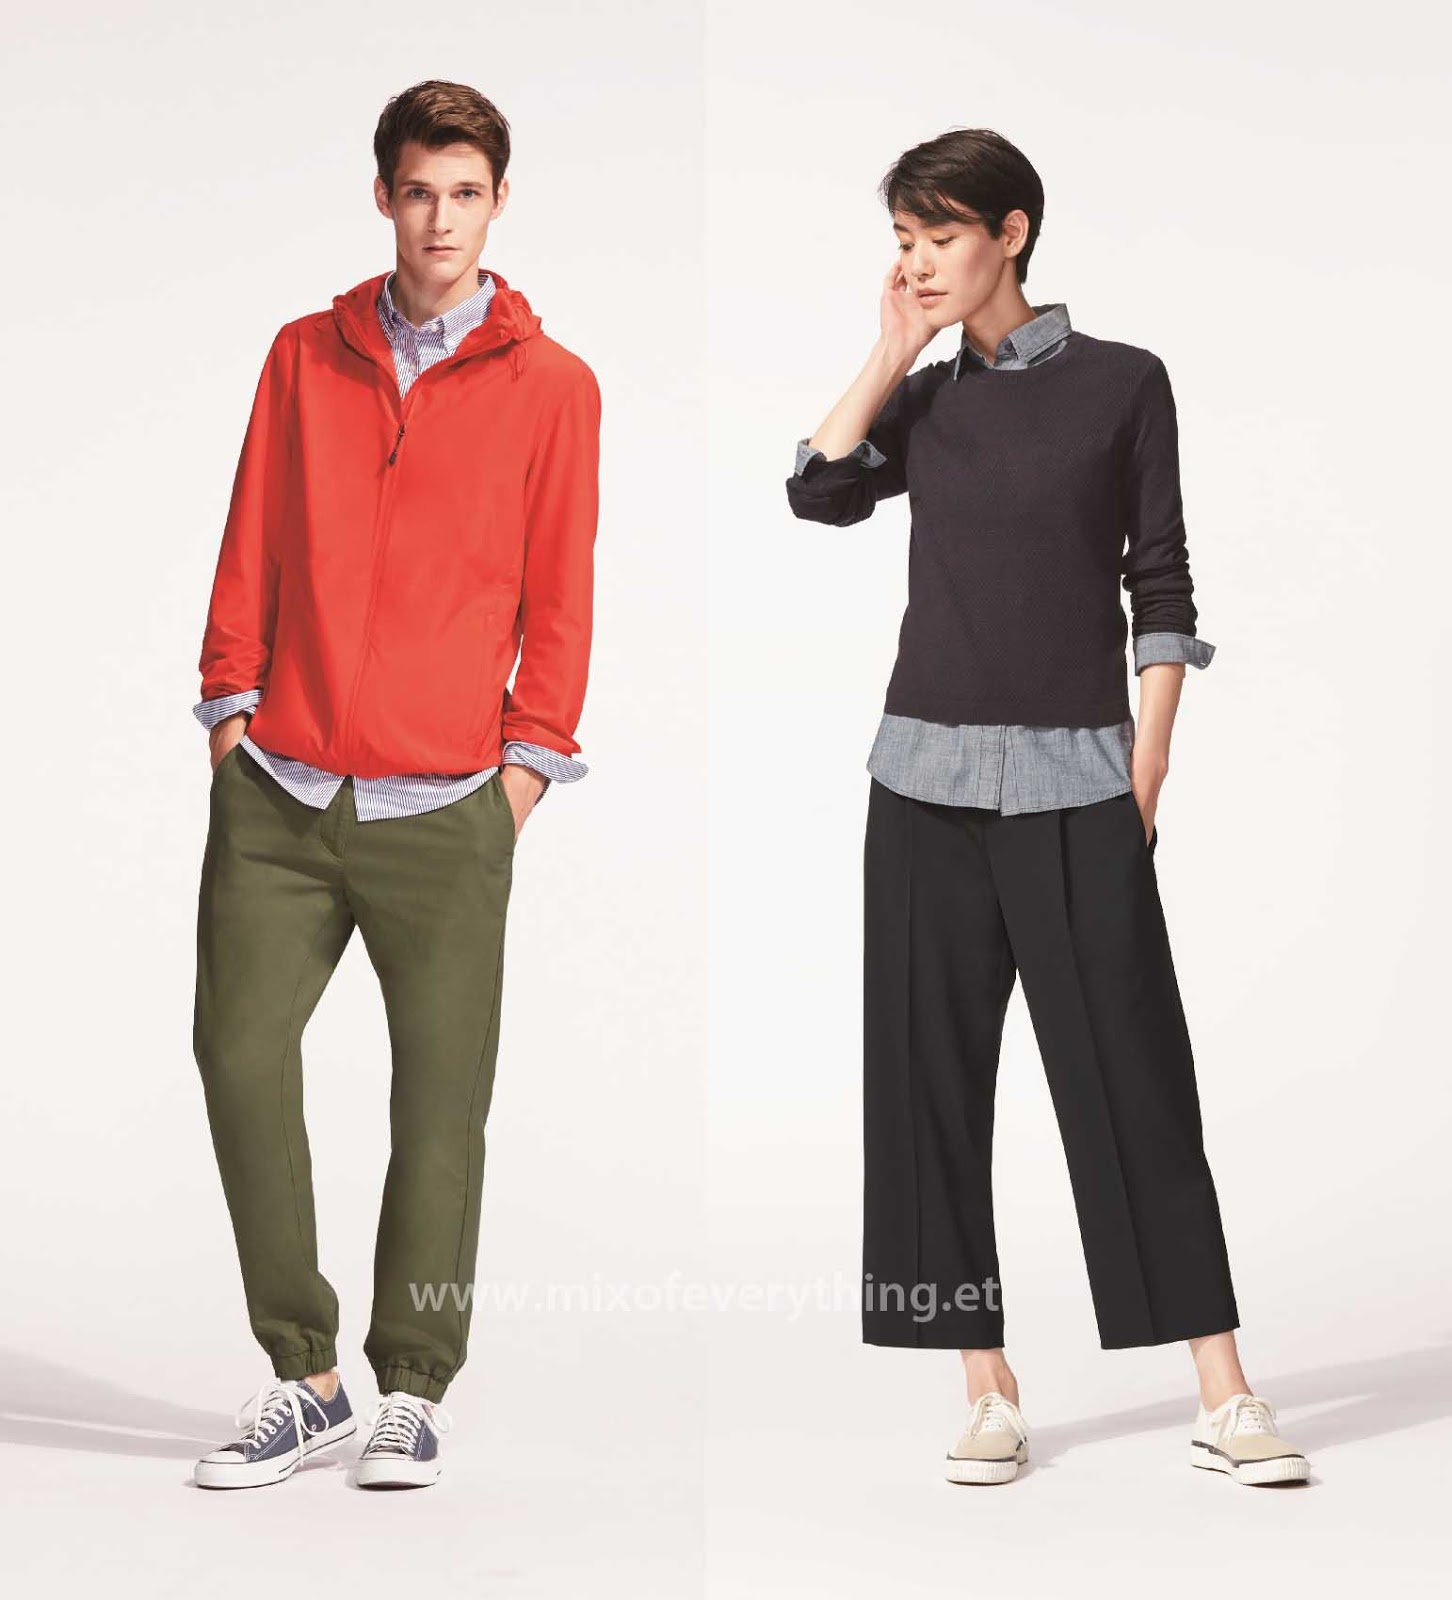 Uniqlo Jogger Pants & Gaucho Pants Highlights the 2016 Spring ...